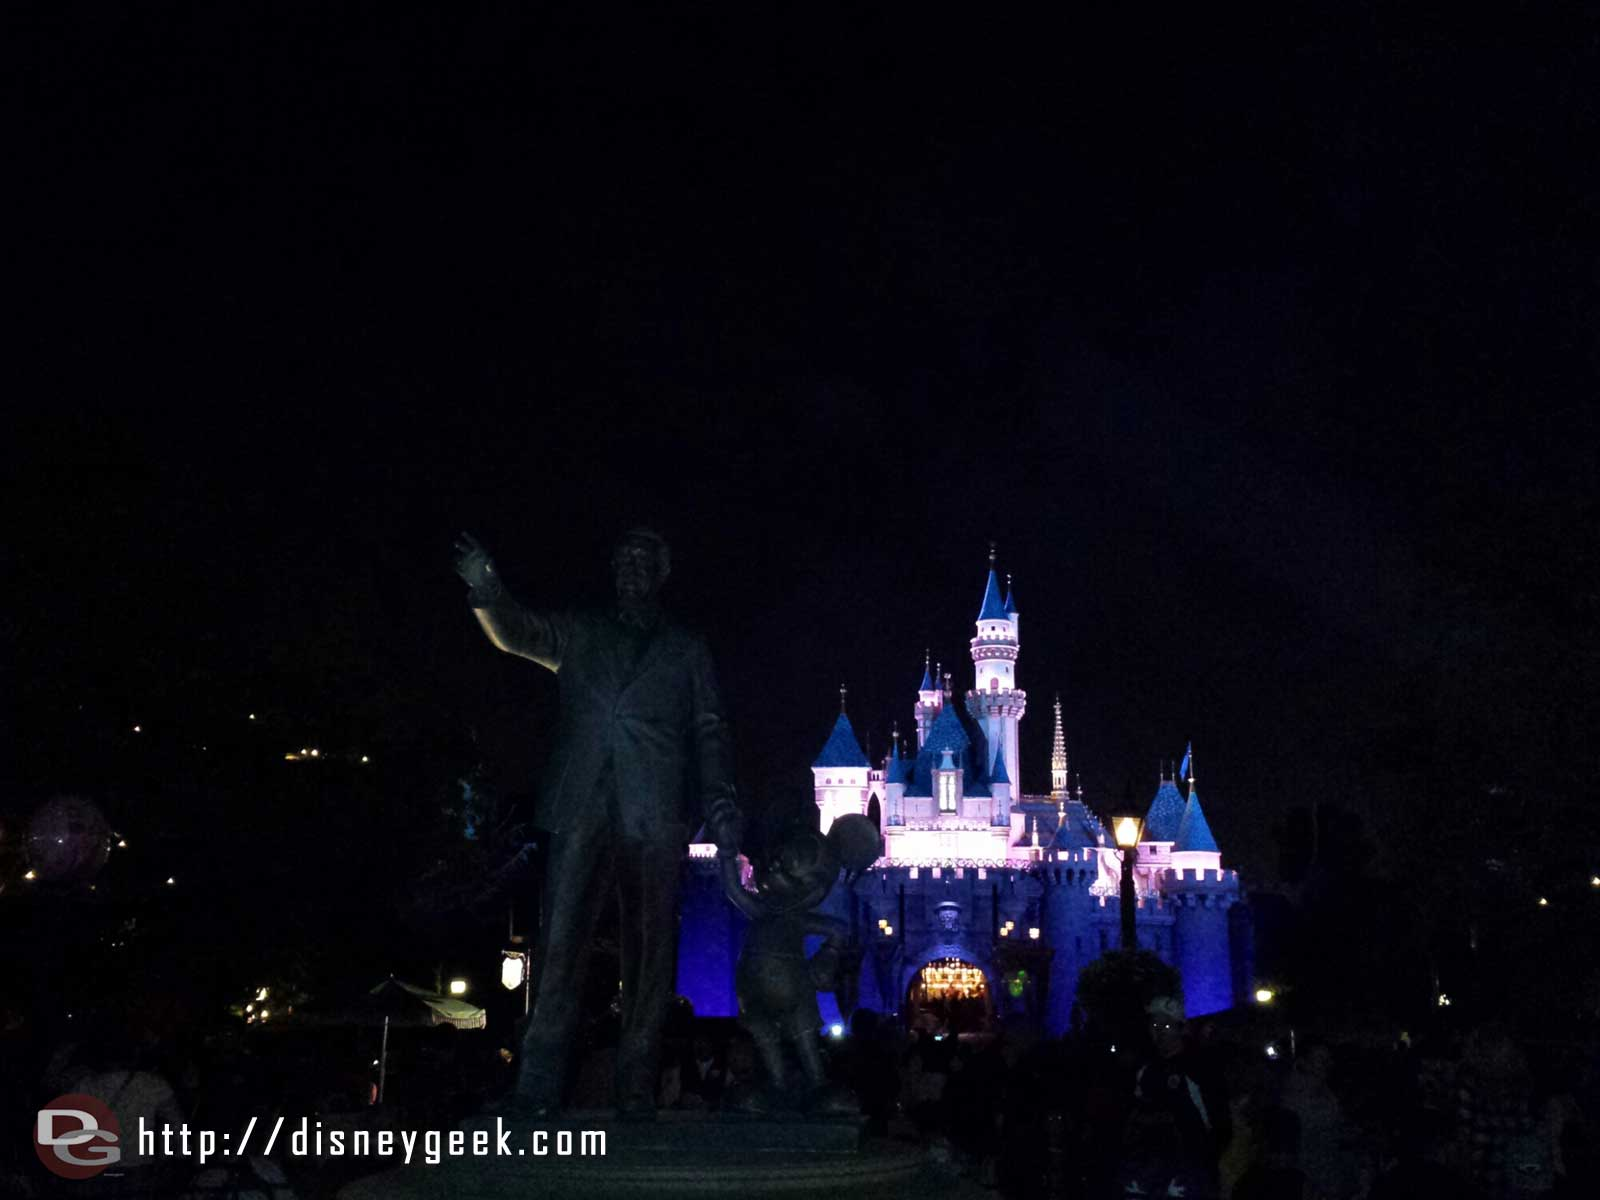 Sleeping Beauty Castle this evening and Partners in the foreground